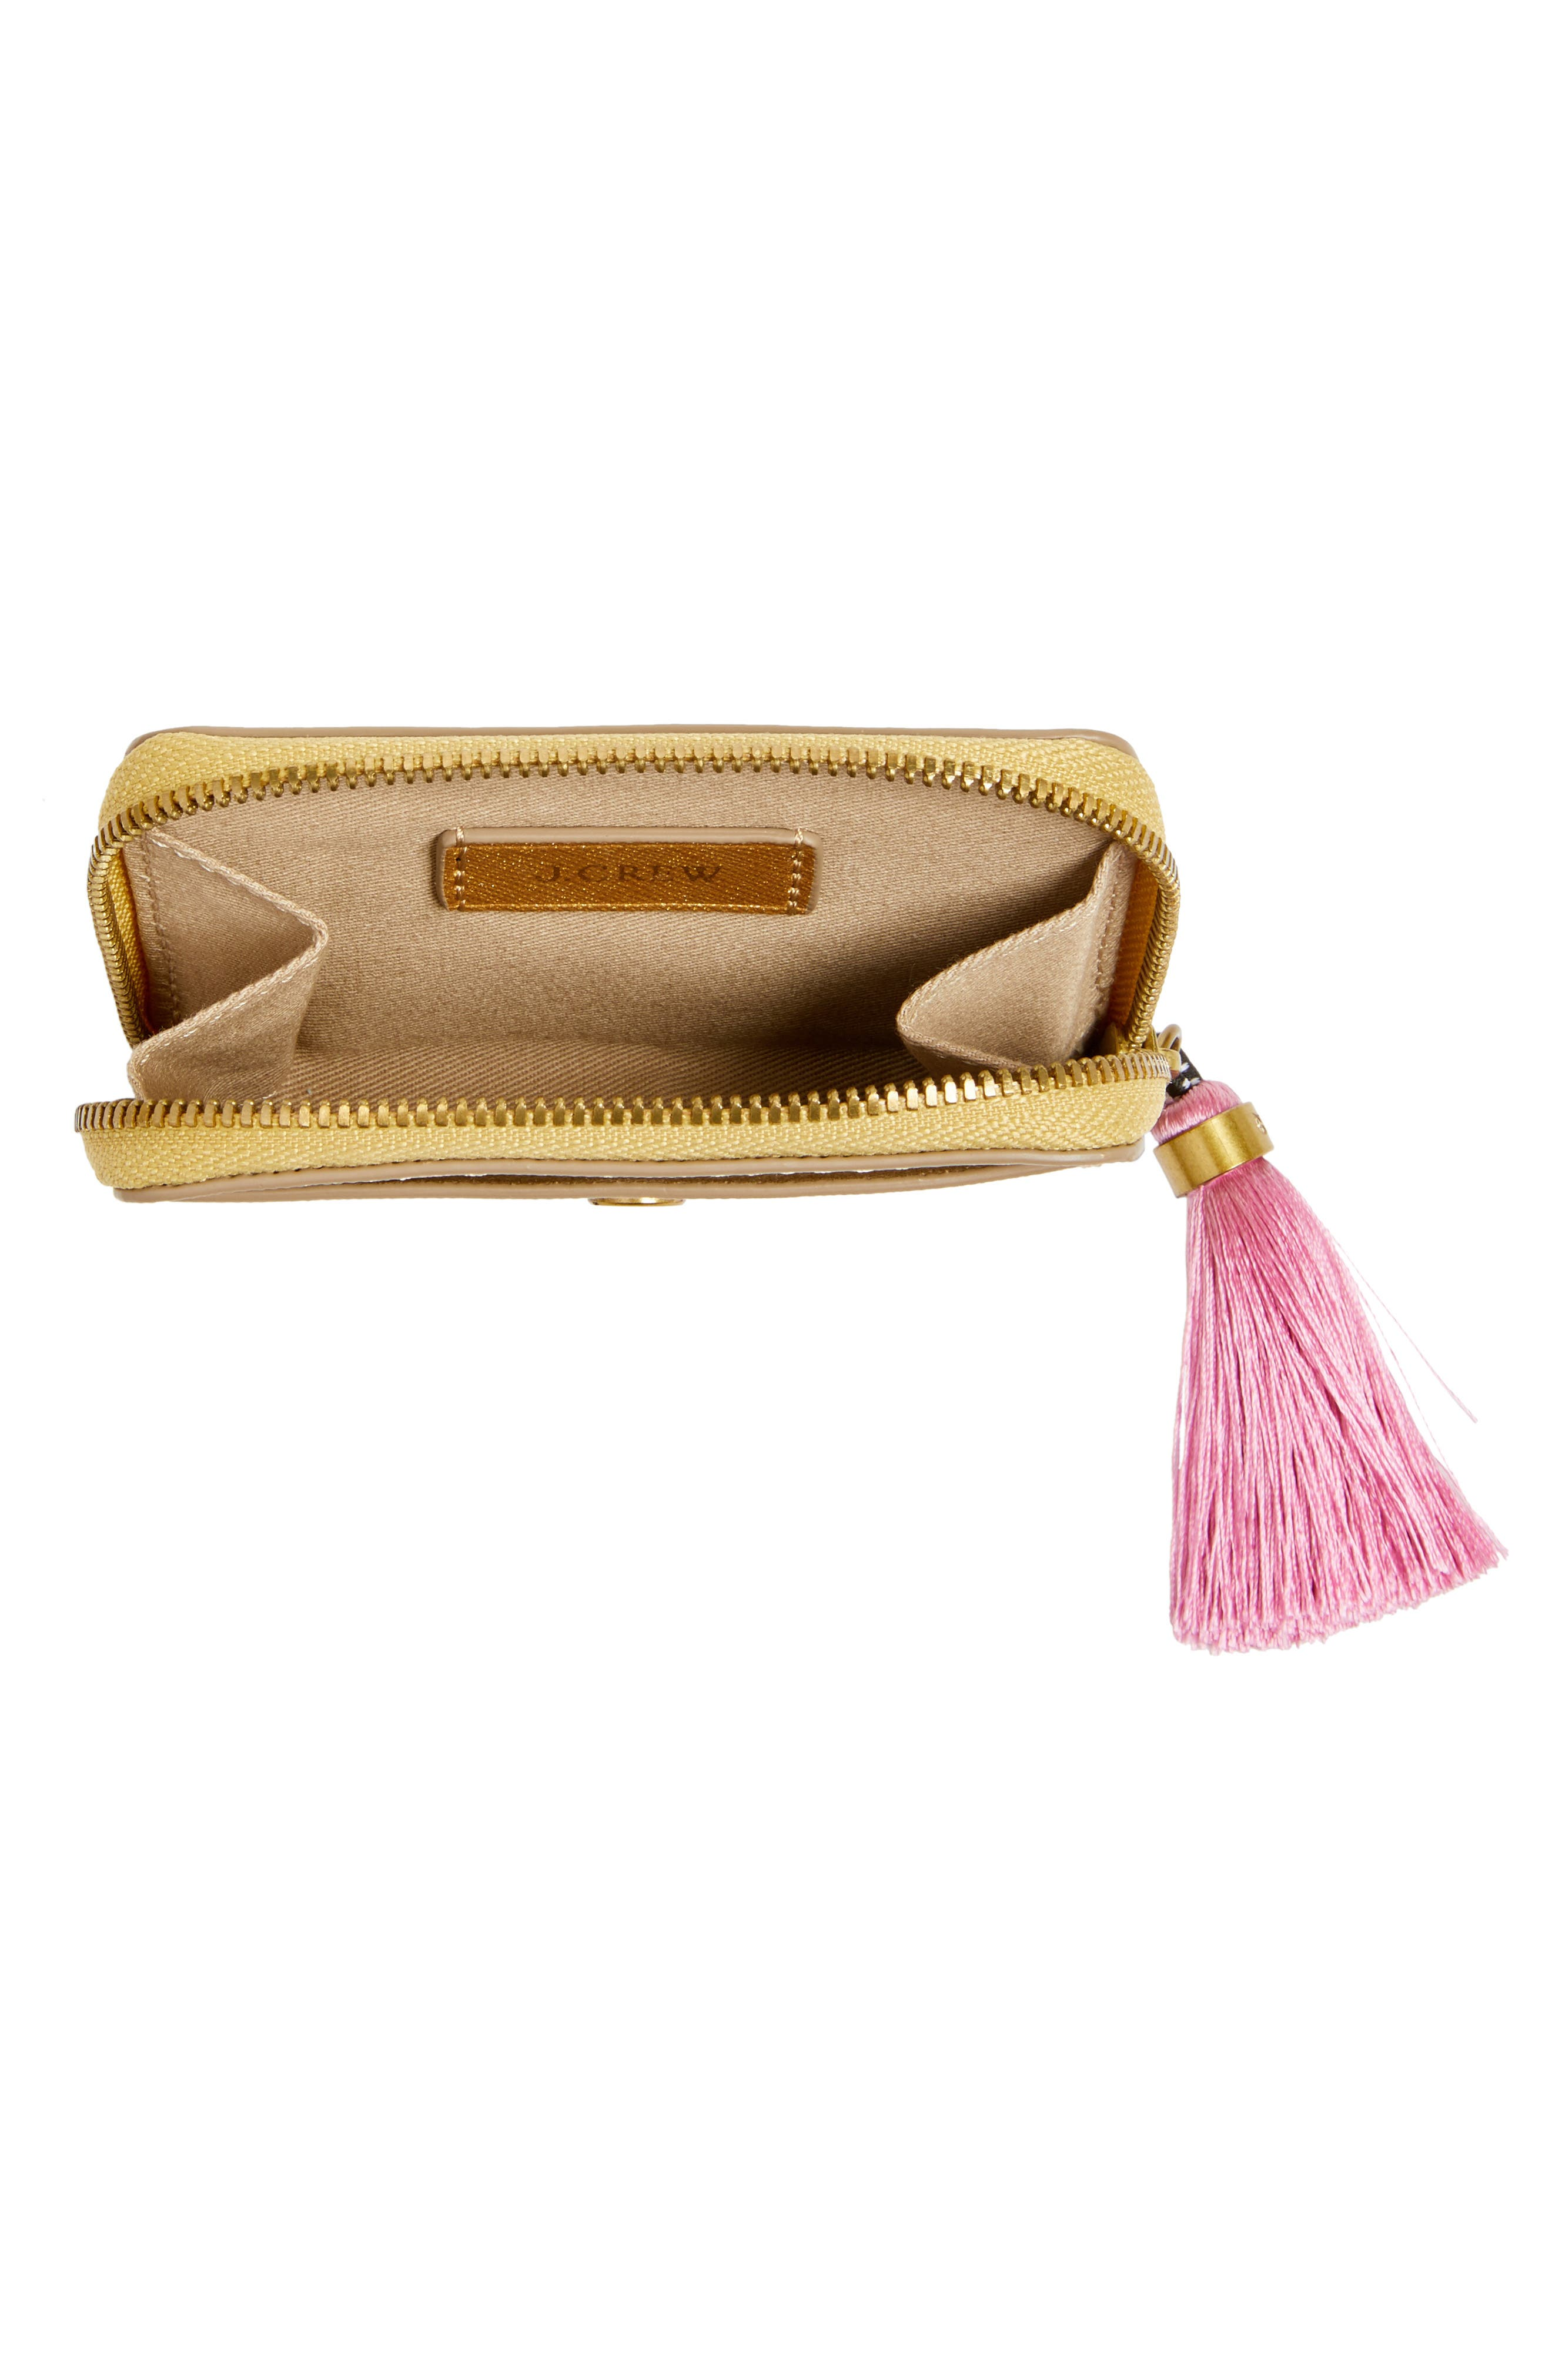 Saffiano Italian Leather Card Case with Tassel,                             Alternate thumbnail 4, color,                             Gold